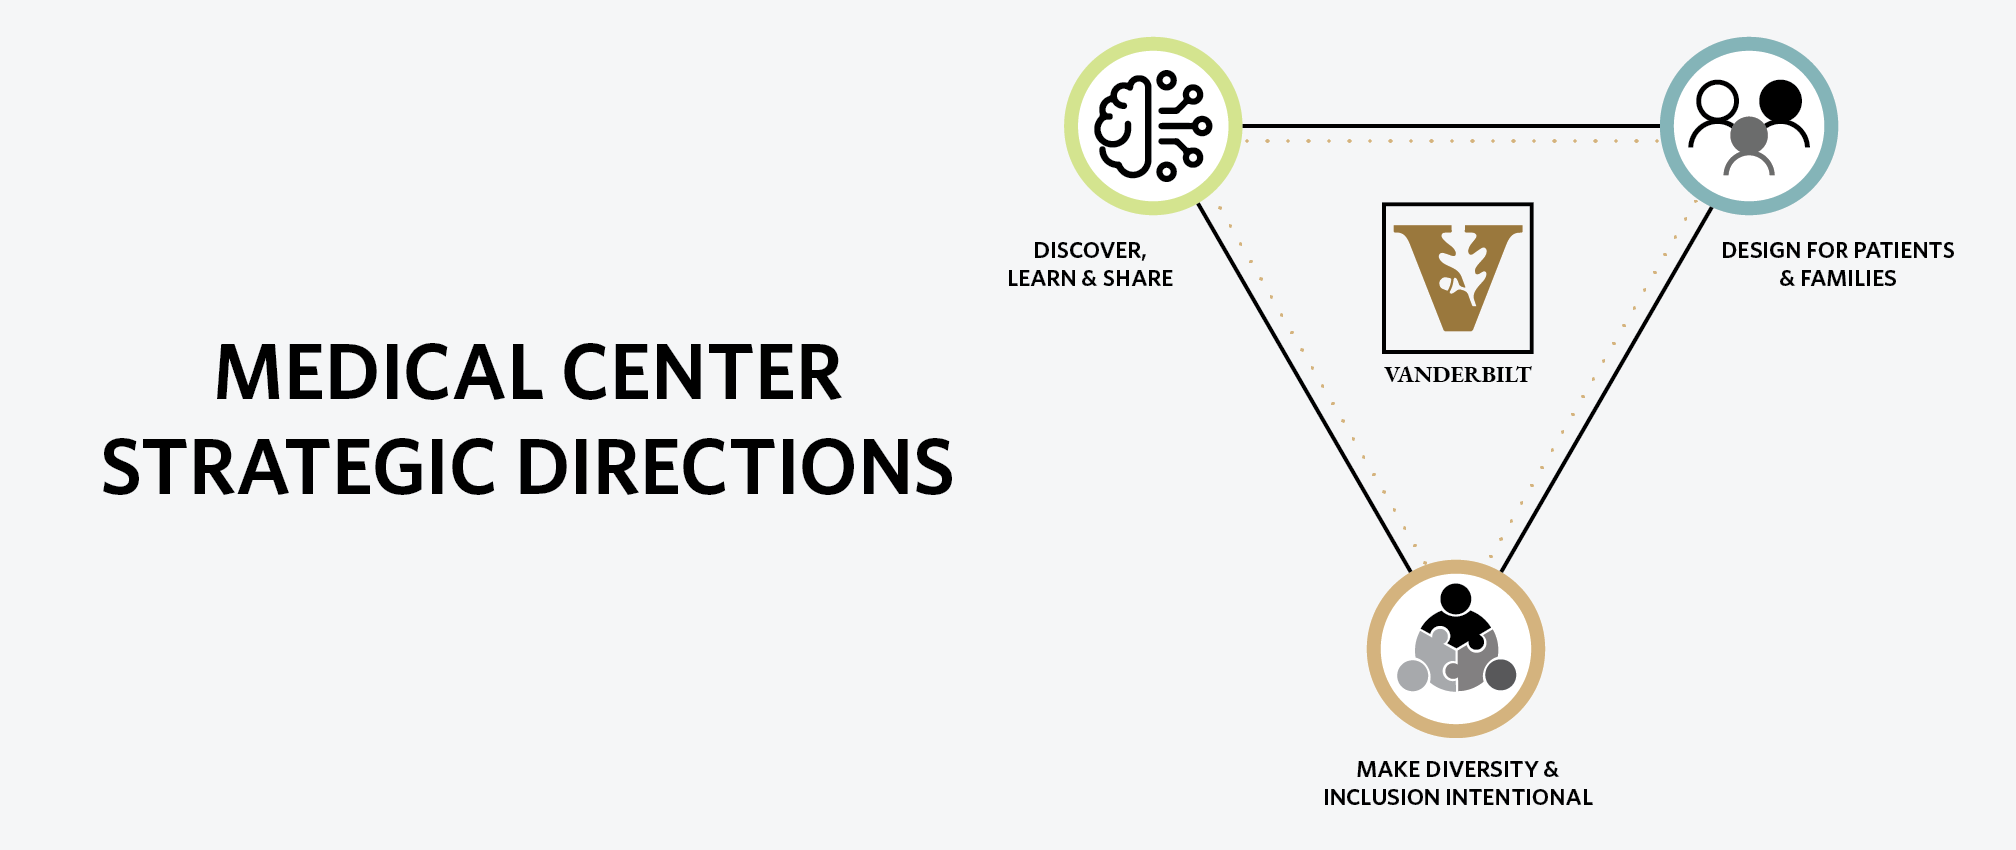 Our Strategic Directions Graphic